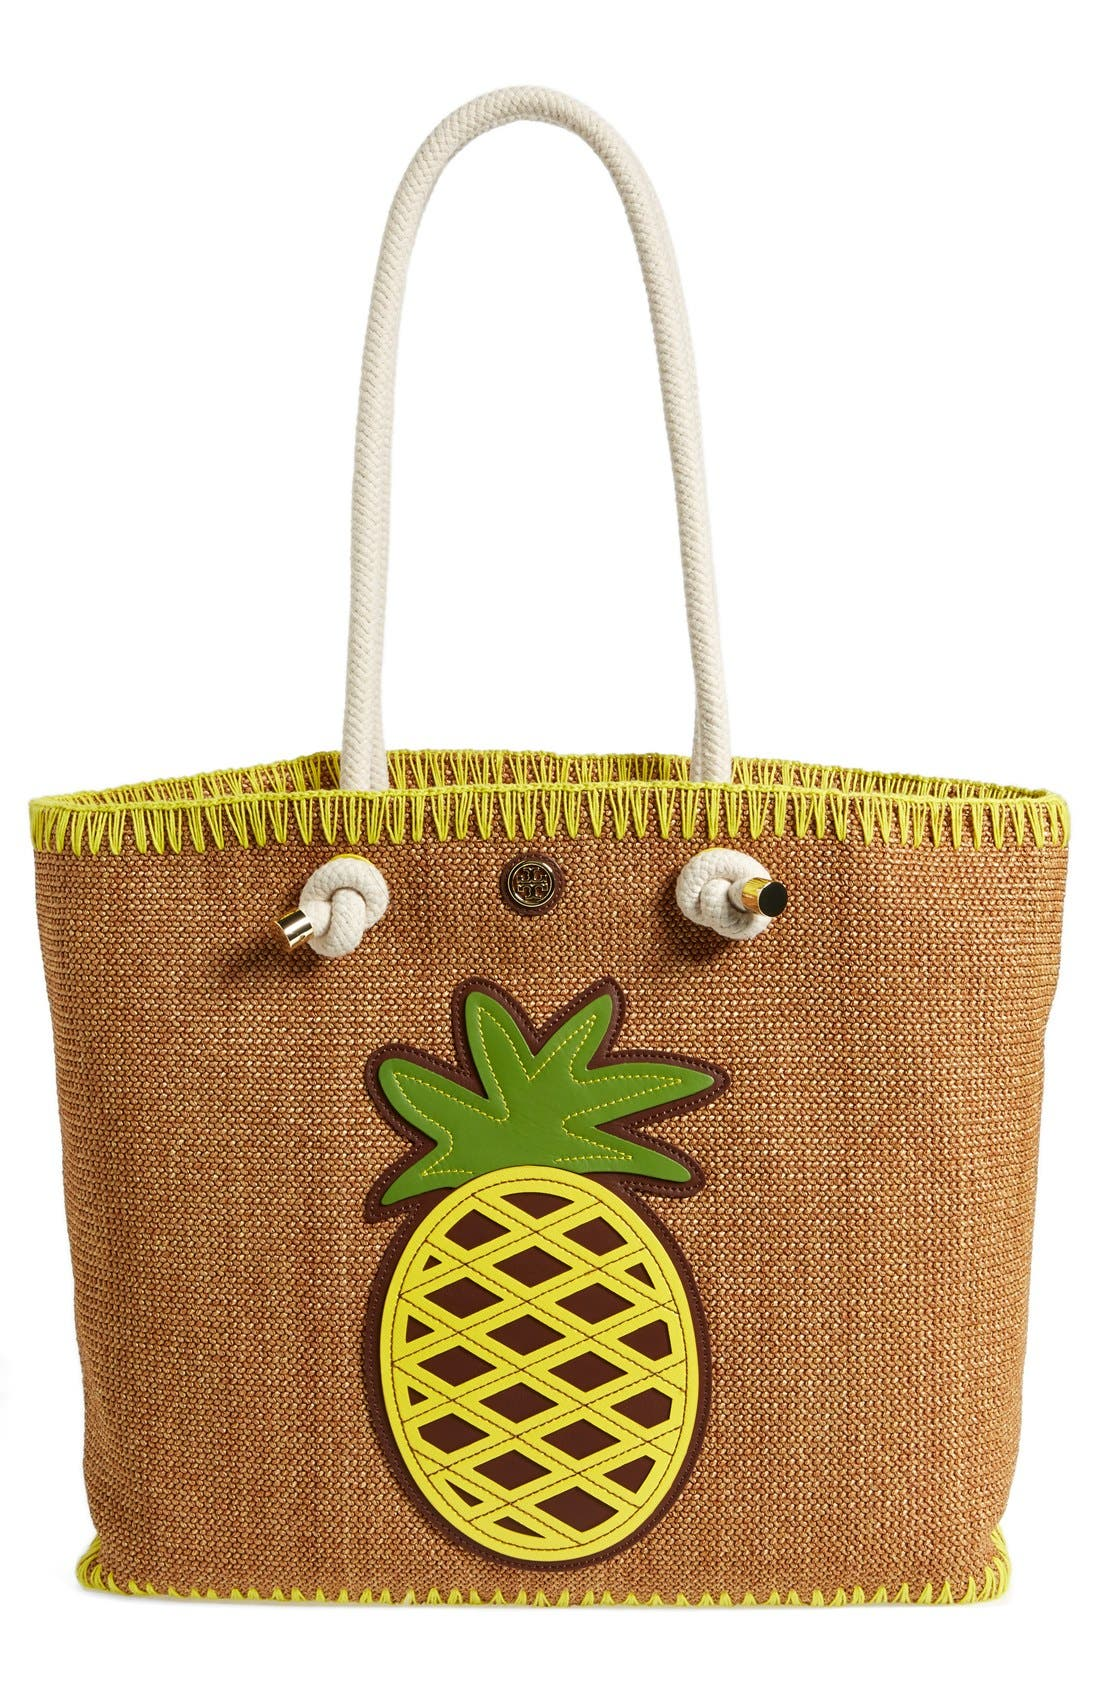 TORY BURCH, 'Pineapple' Woven Tote, Main thumbnail 1, color, 200